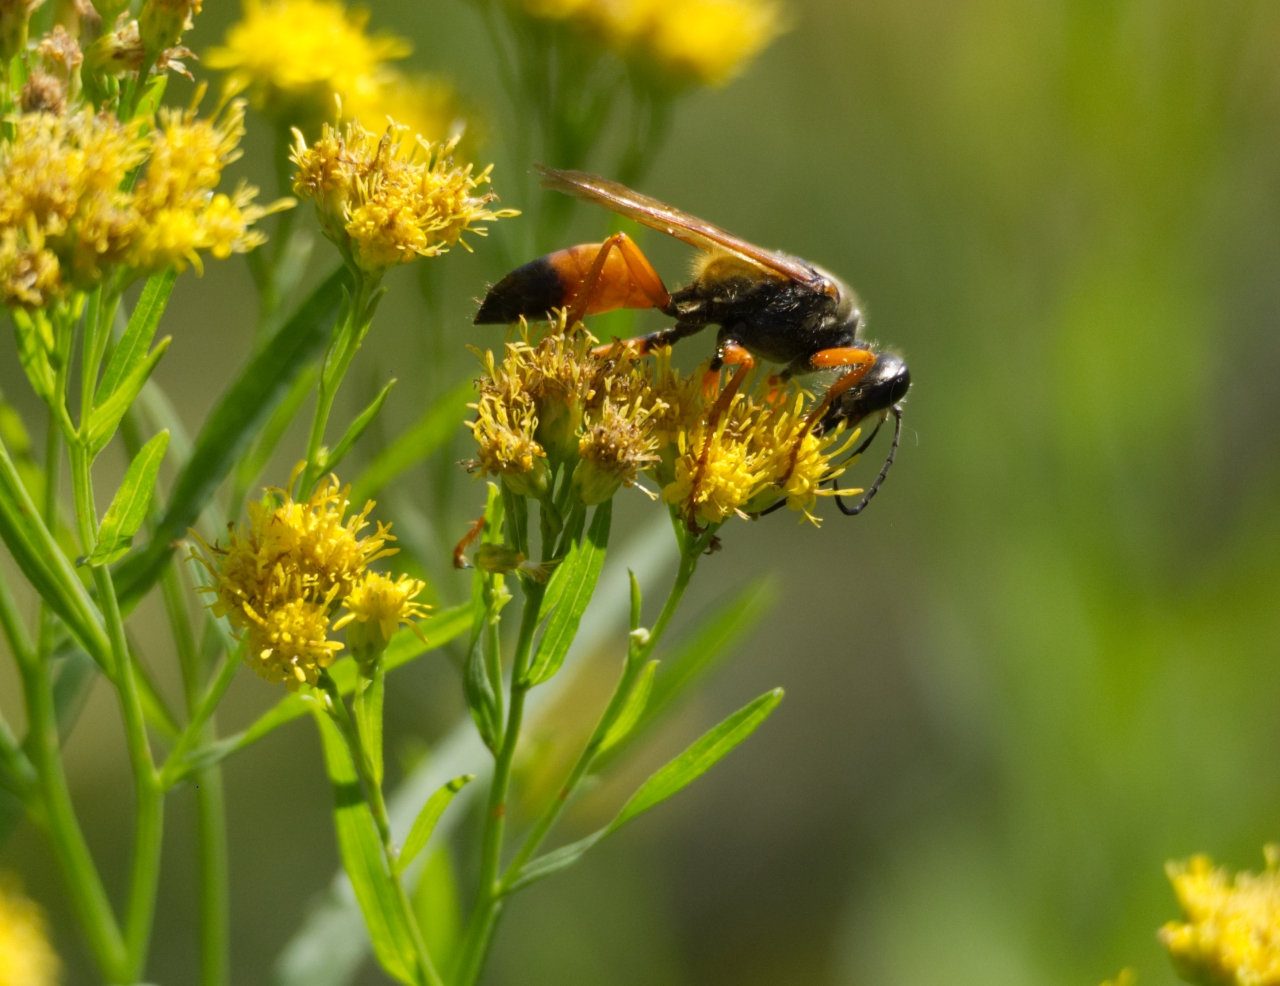 The Great Golden Digger Wasp